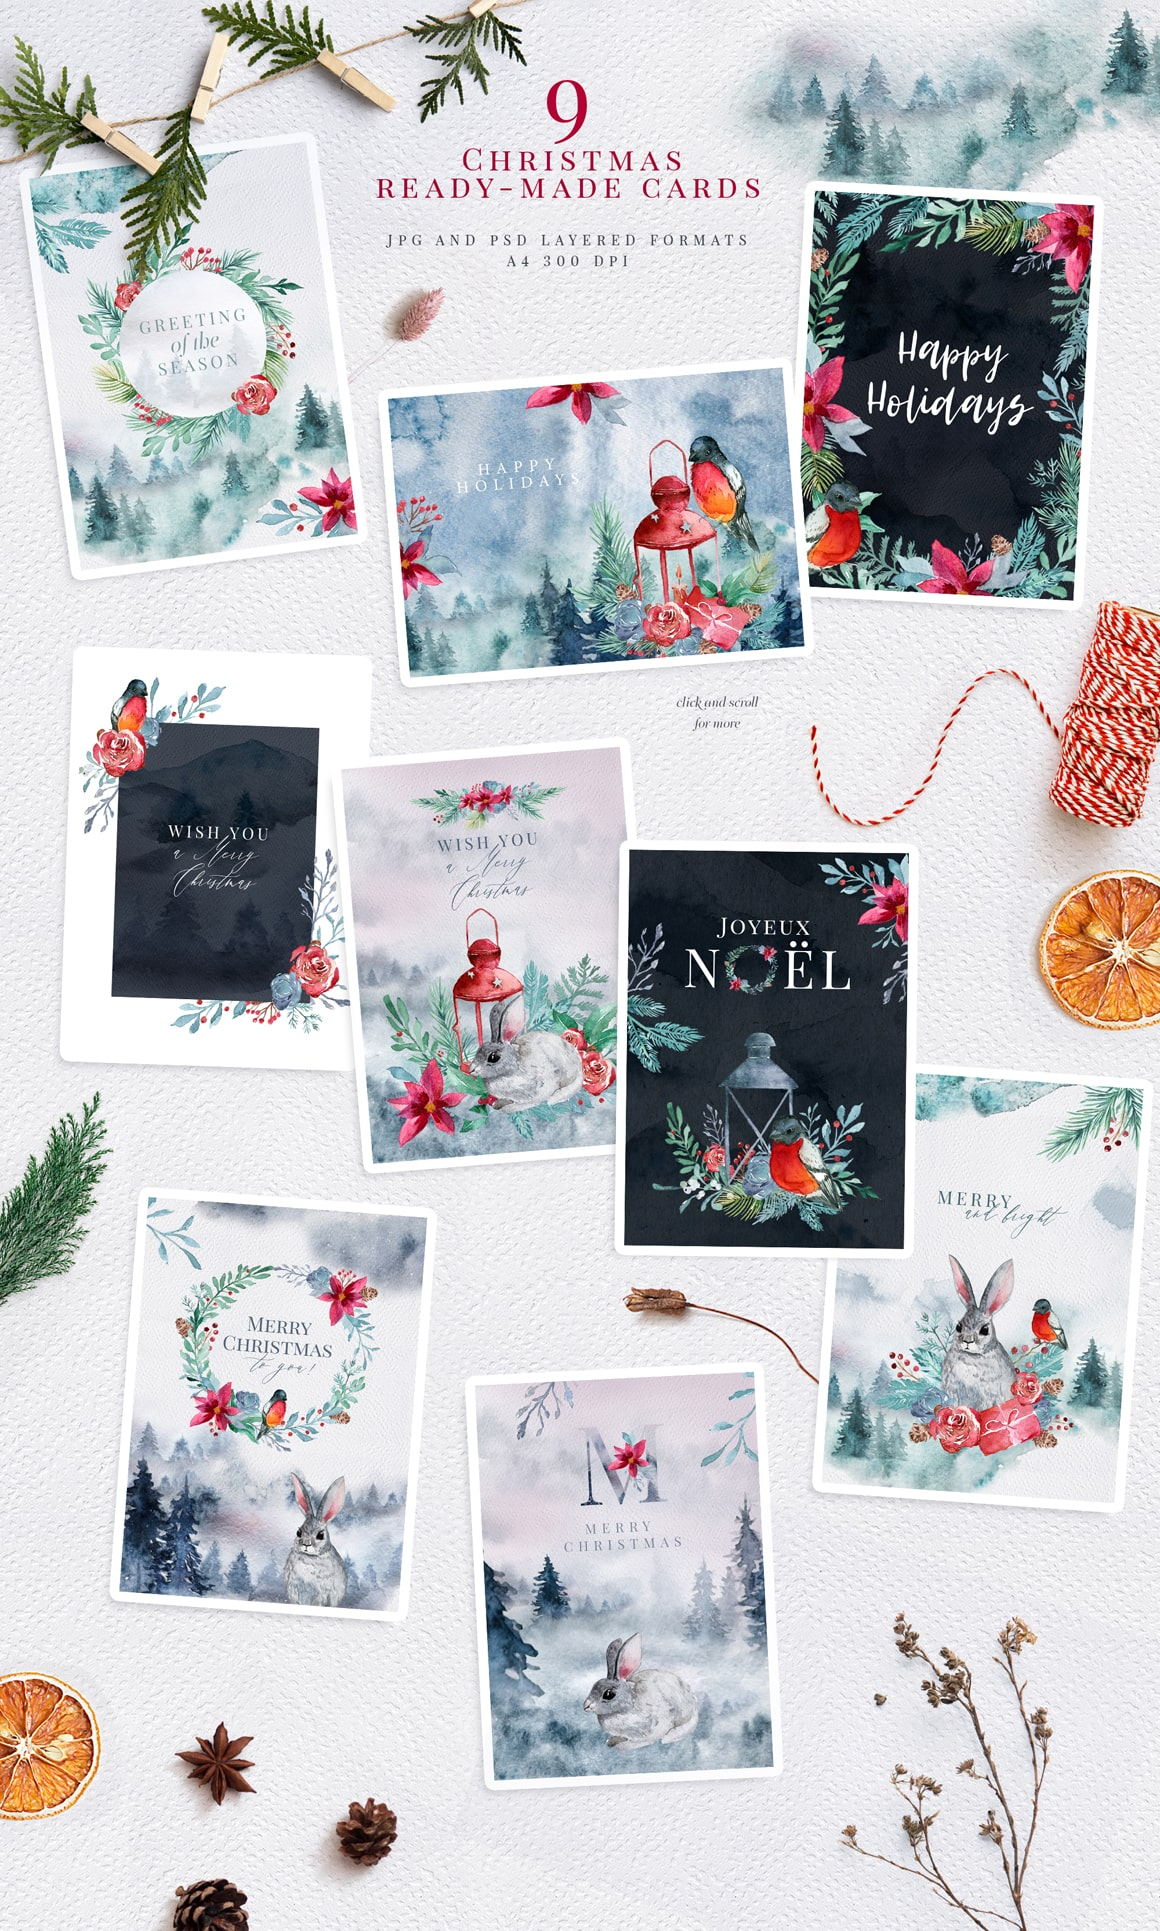 Warm Wishes - Christmas Watercolors